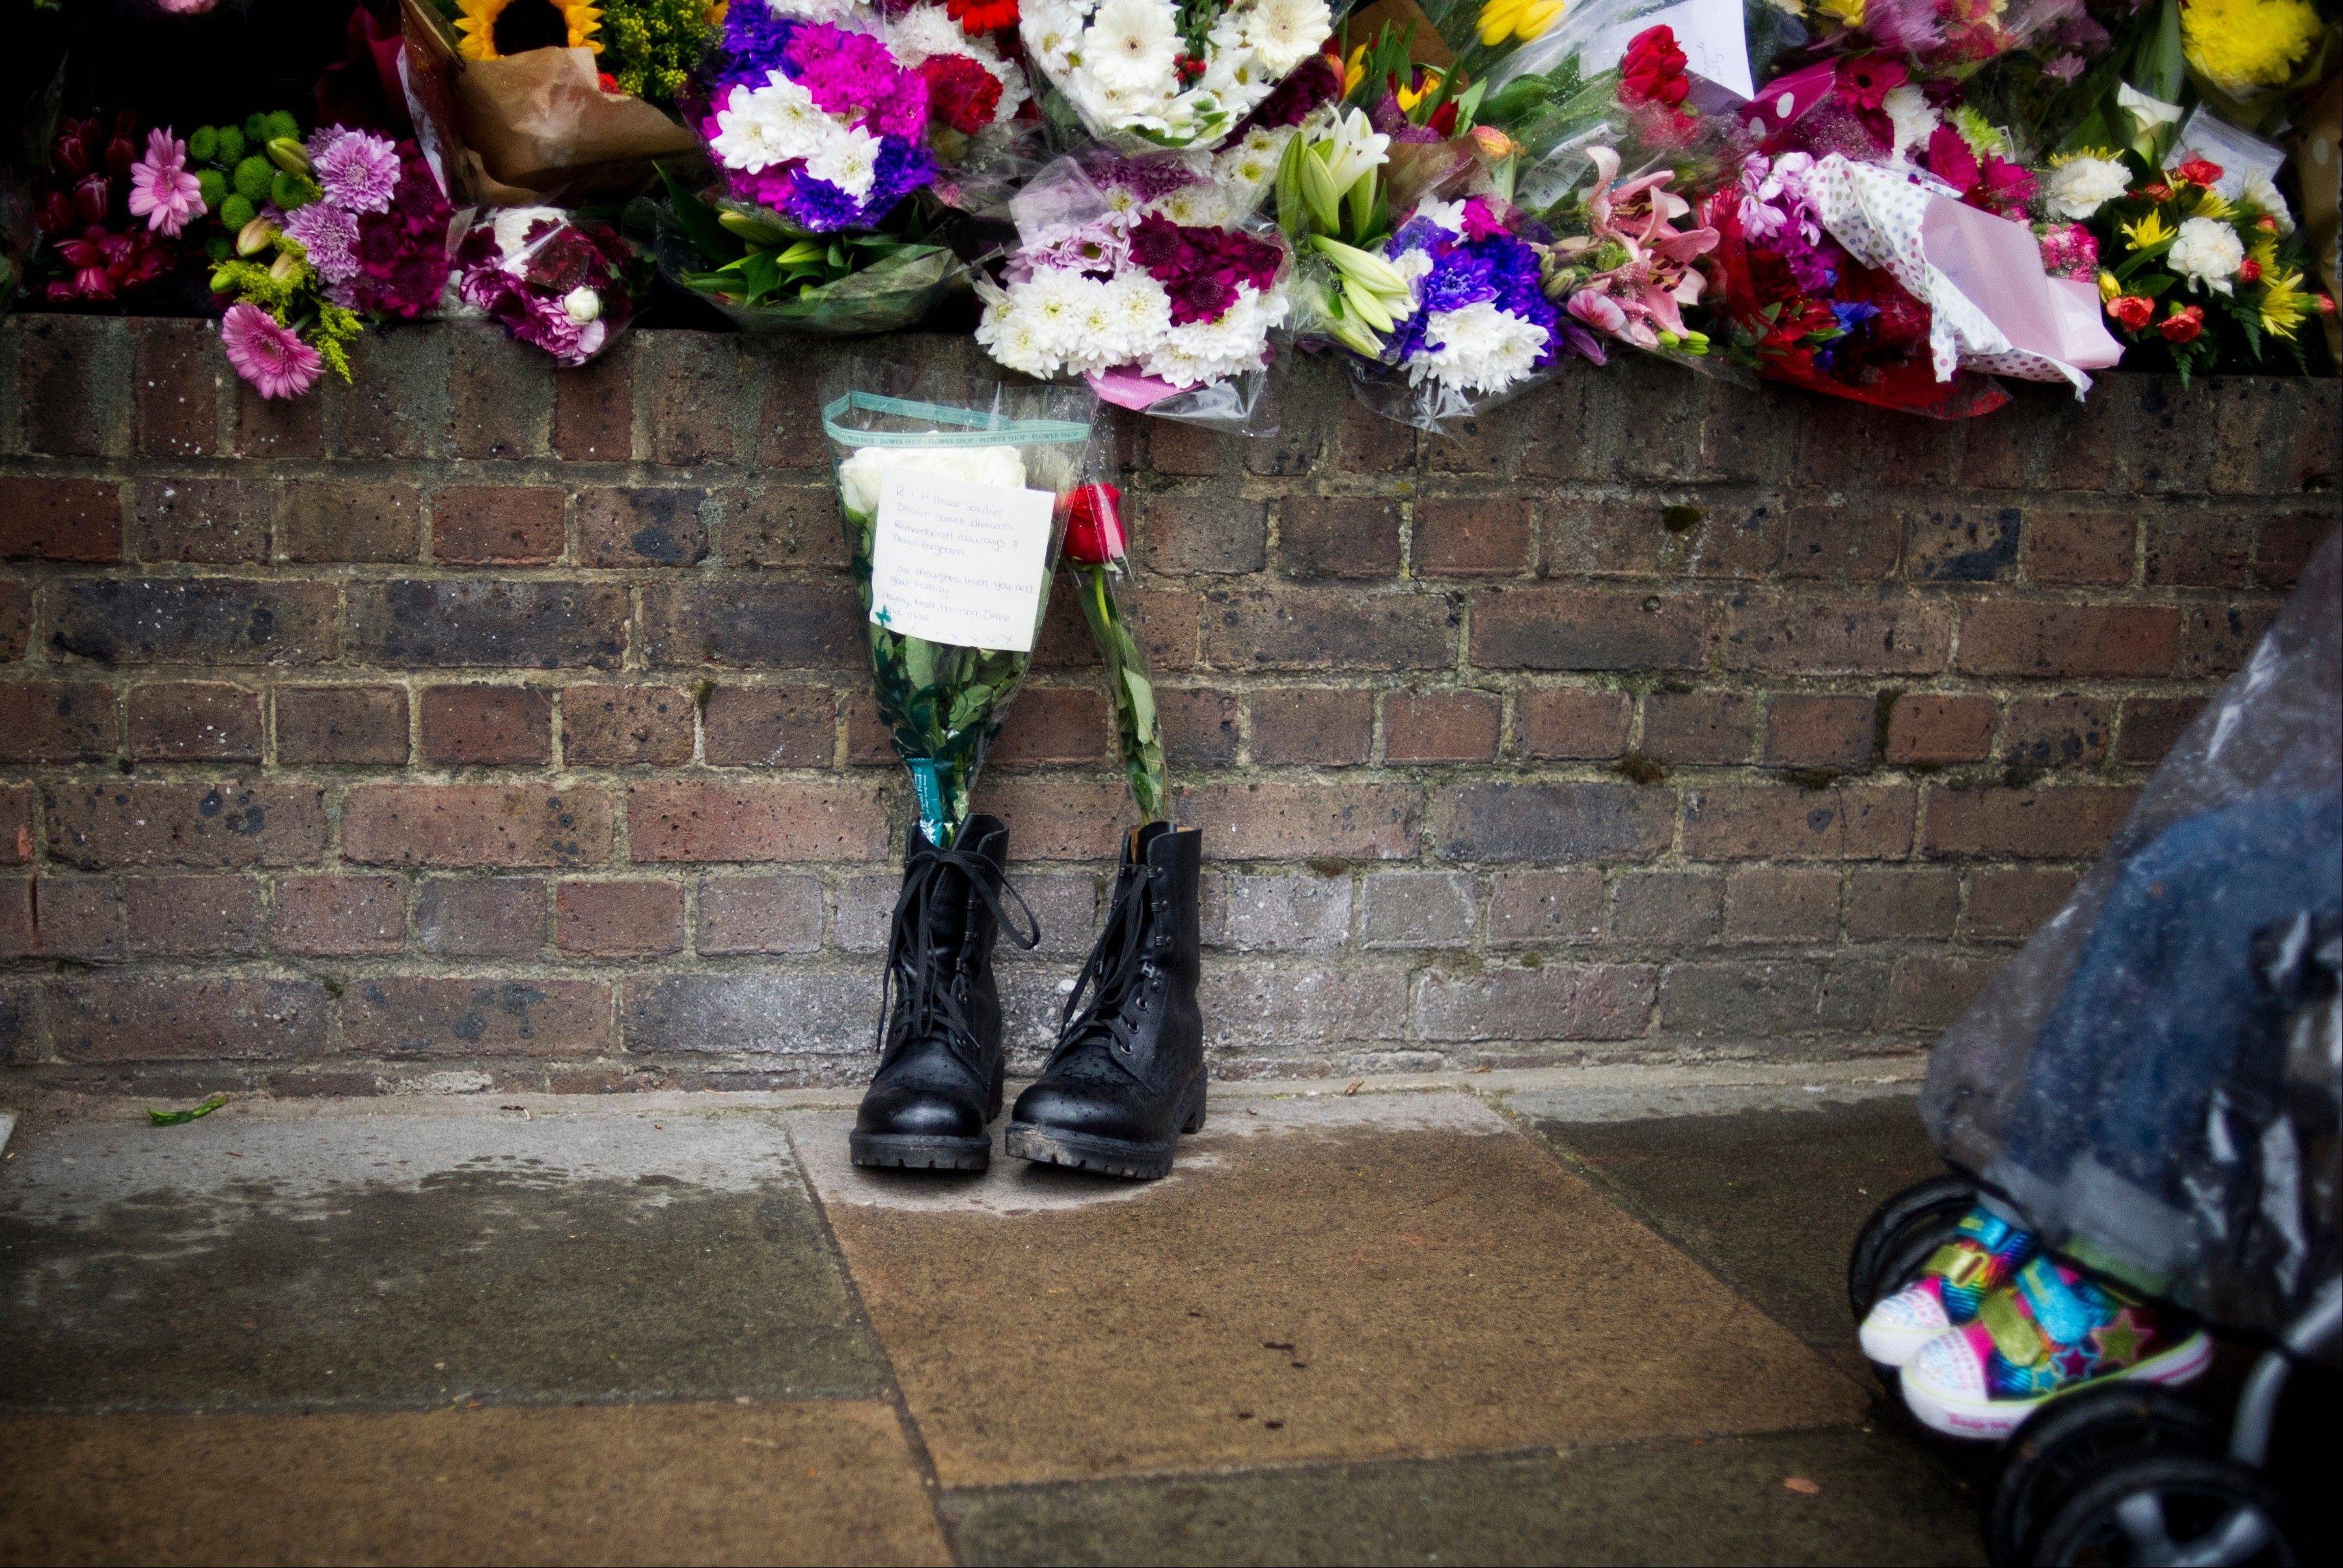 Military boots are laid in tribute outside the Woolwich Barracks, in London, Friday, May 24, 2013, in response to the bloody attack on Wednesday when a British soldier was killed in the nearby street. London's Metropolitan Police said more than 1,000 officers will be sent to potential trouble spots as Britain is bracing for any clashes with right-wing extremists and even possible copycat terror attacks after the brutal slaying of a young soldier.